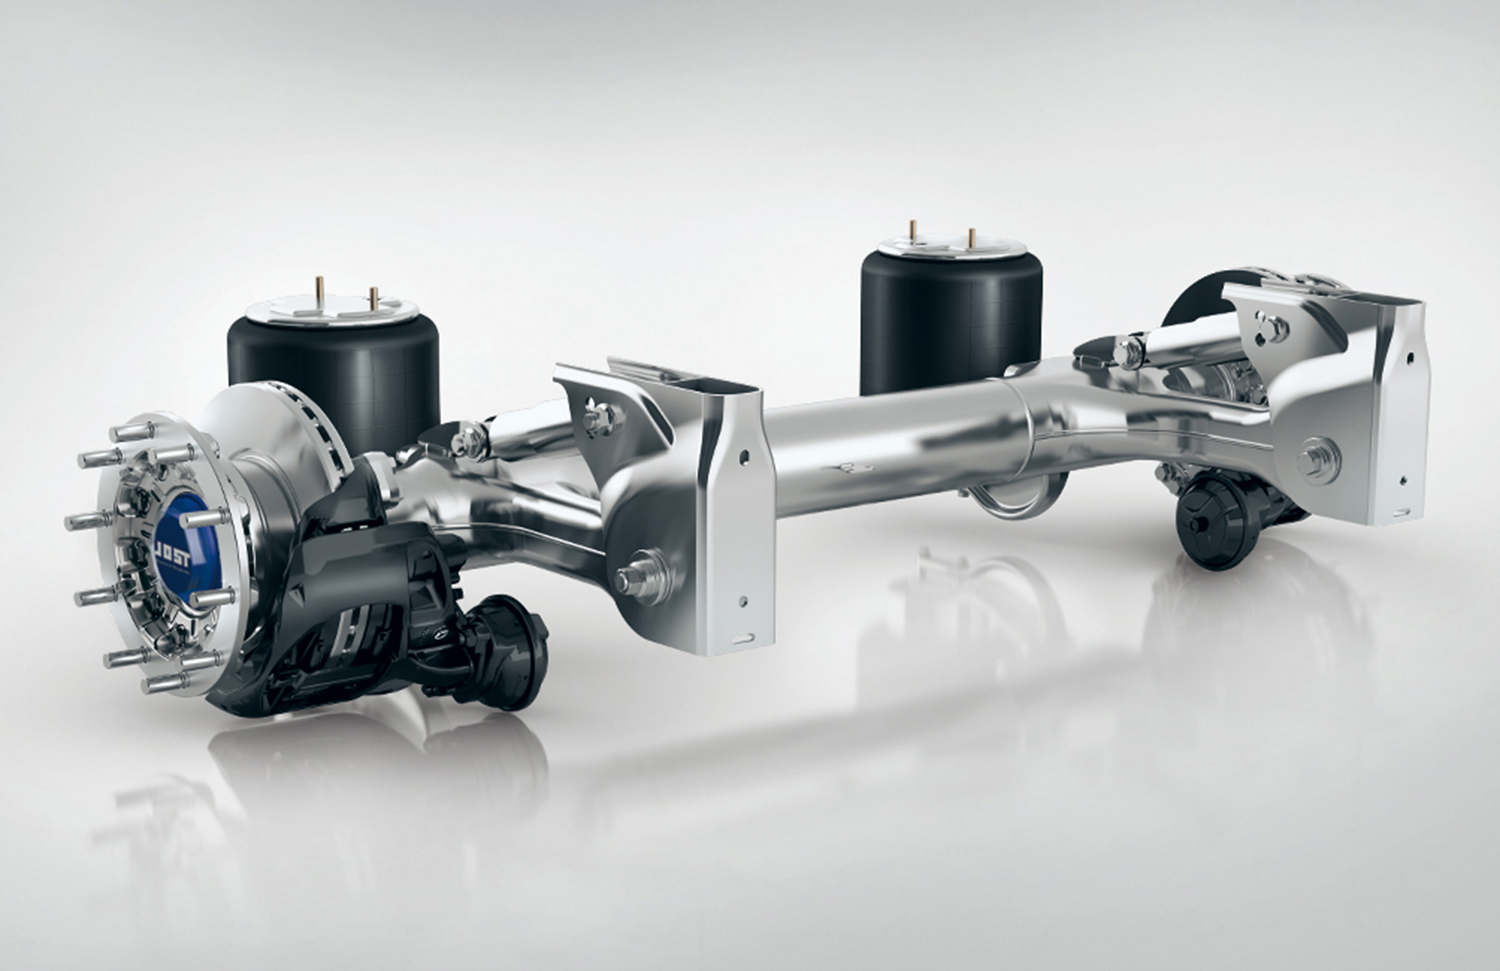 Buying genuine parts for axle maintenance saves money and improves safety